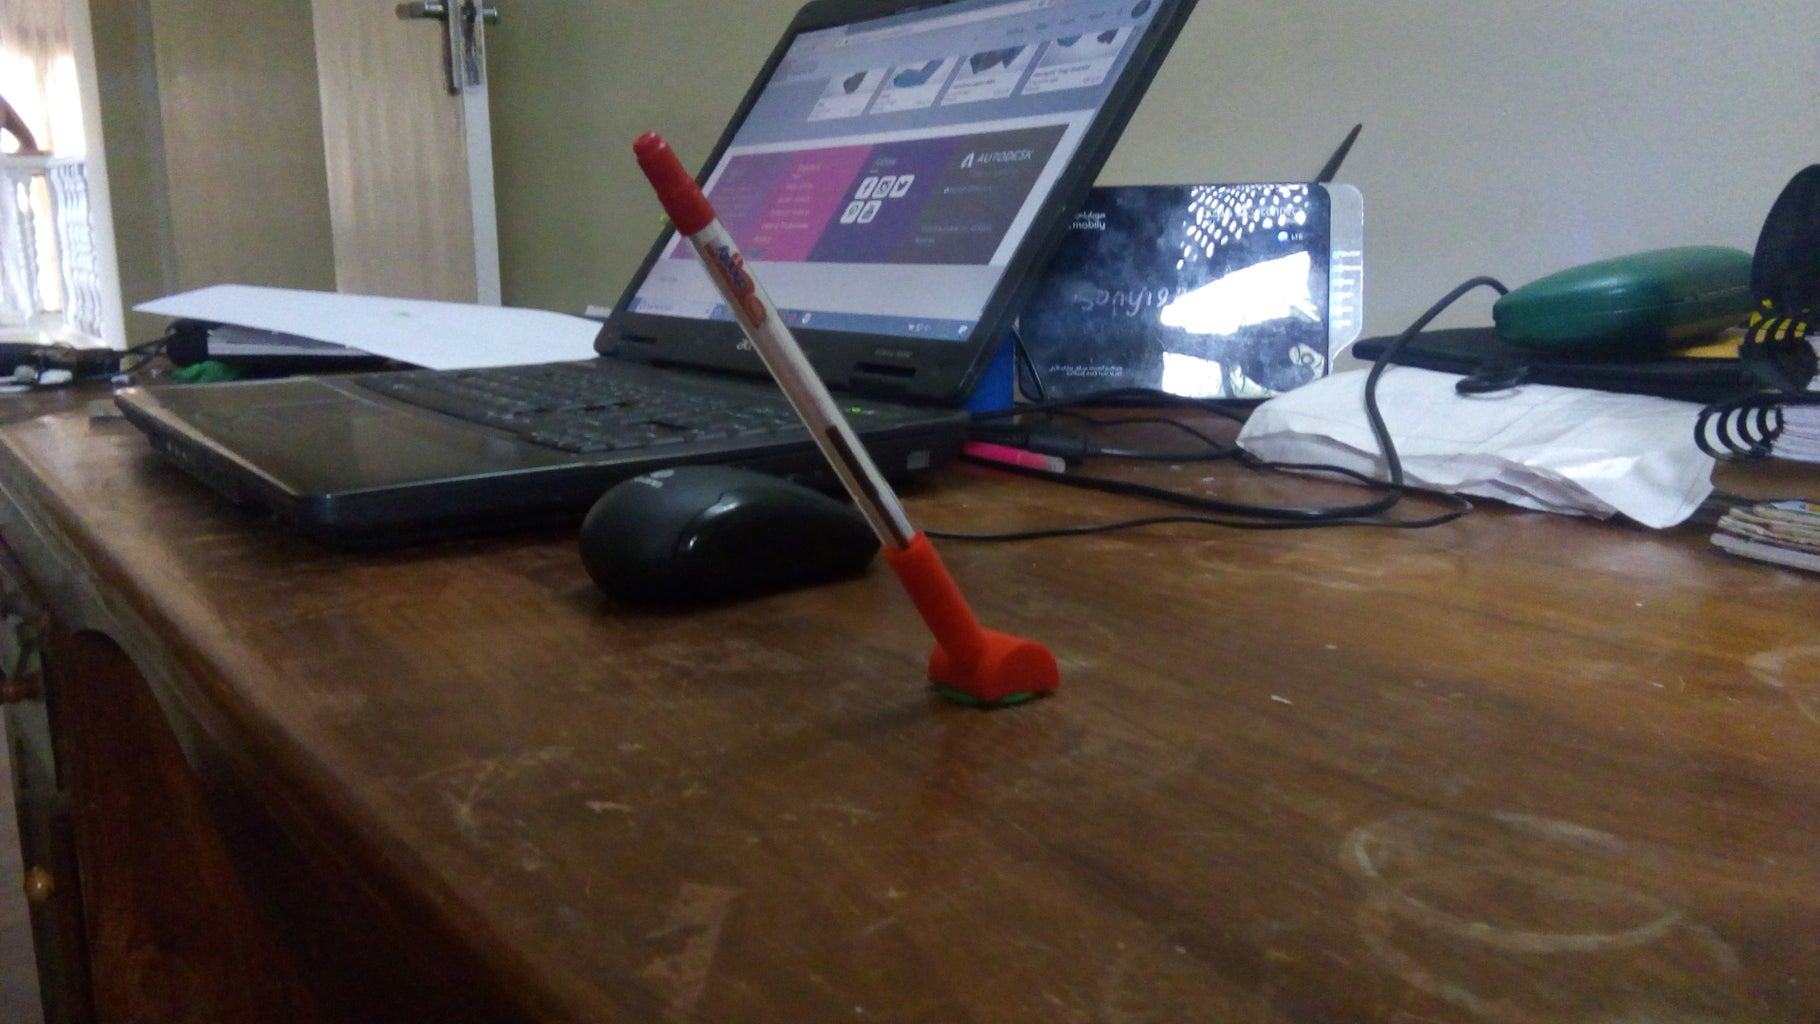 Congratulations! You Have Made a Pen Holder